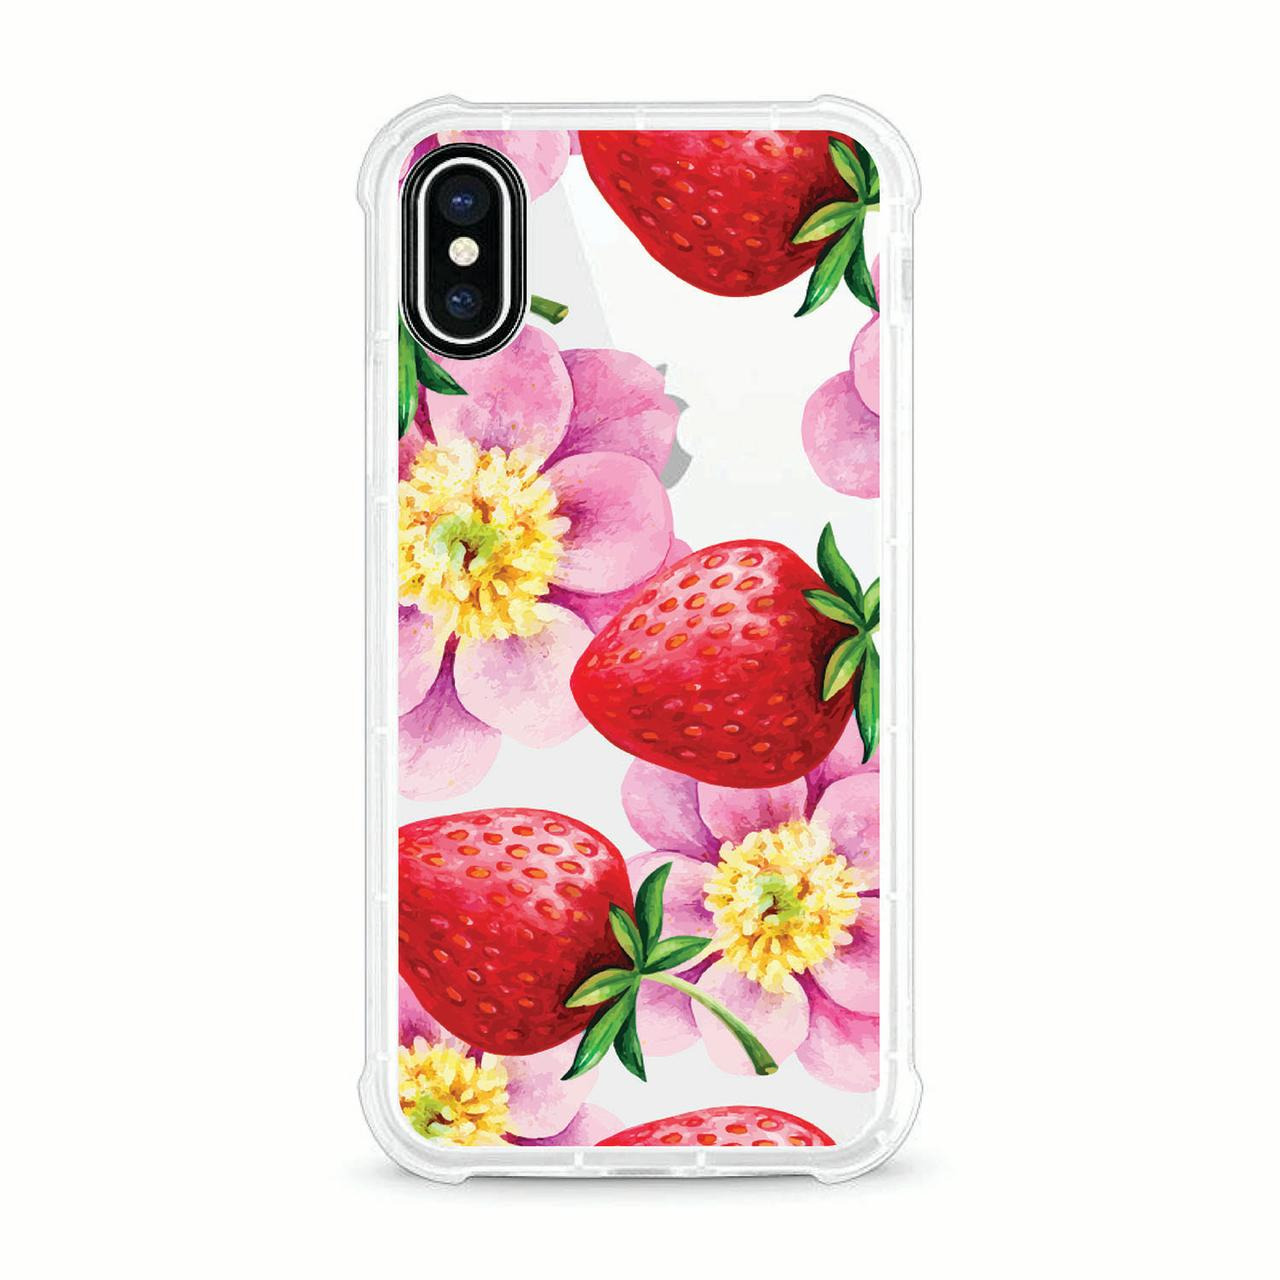 OTM Essentials iPhone X Clear Rugged Edge Phone Case, Strawberry Flowers